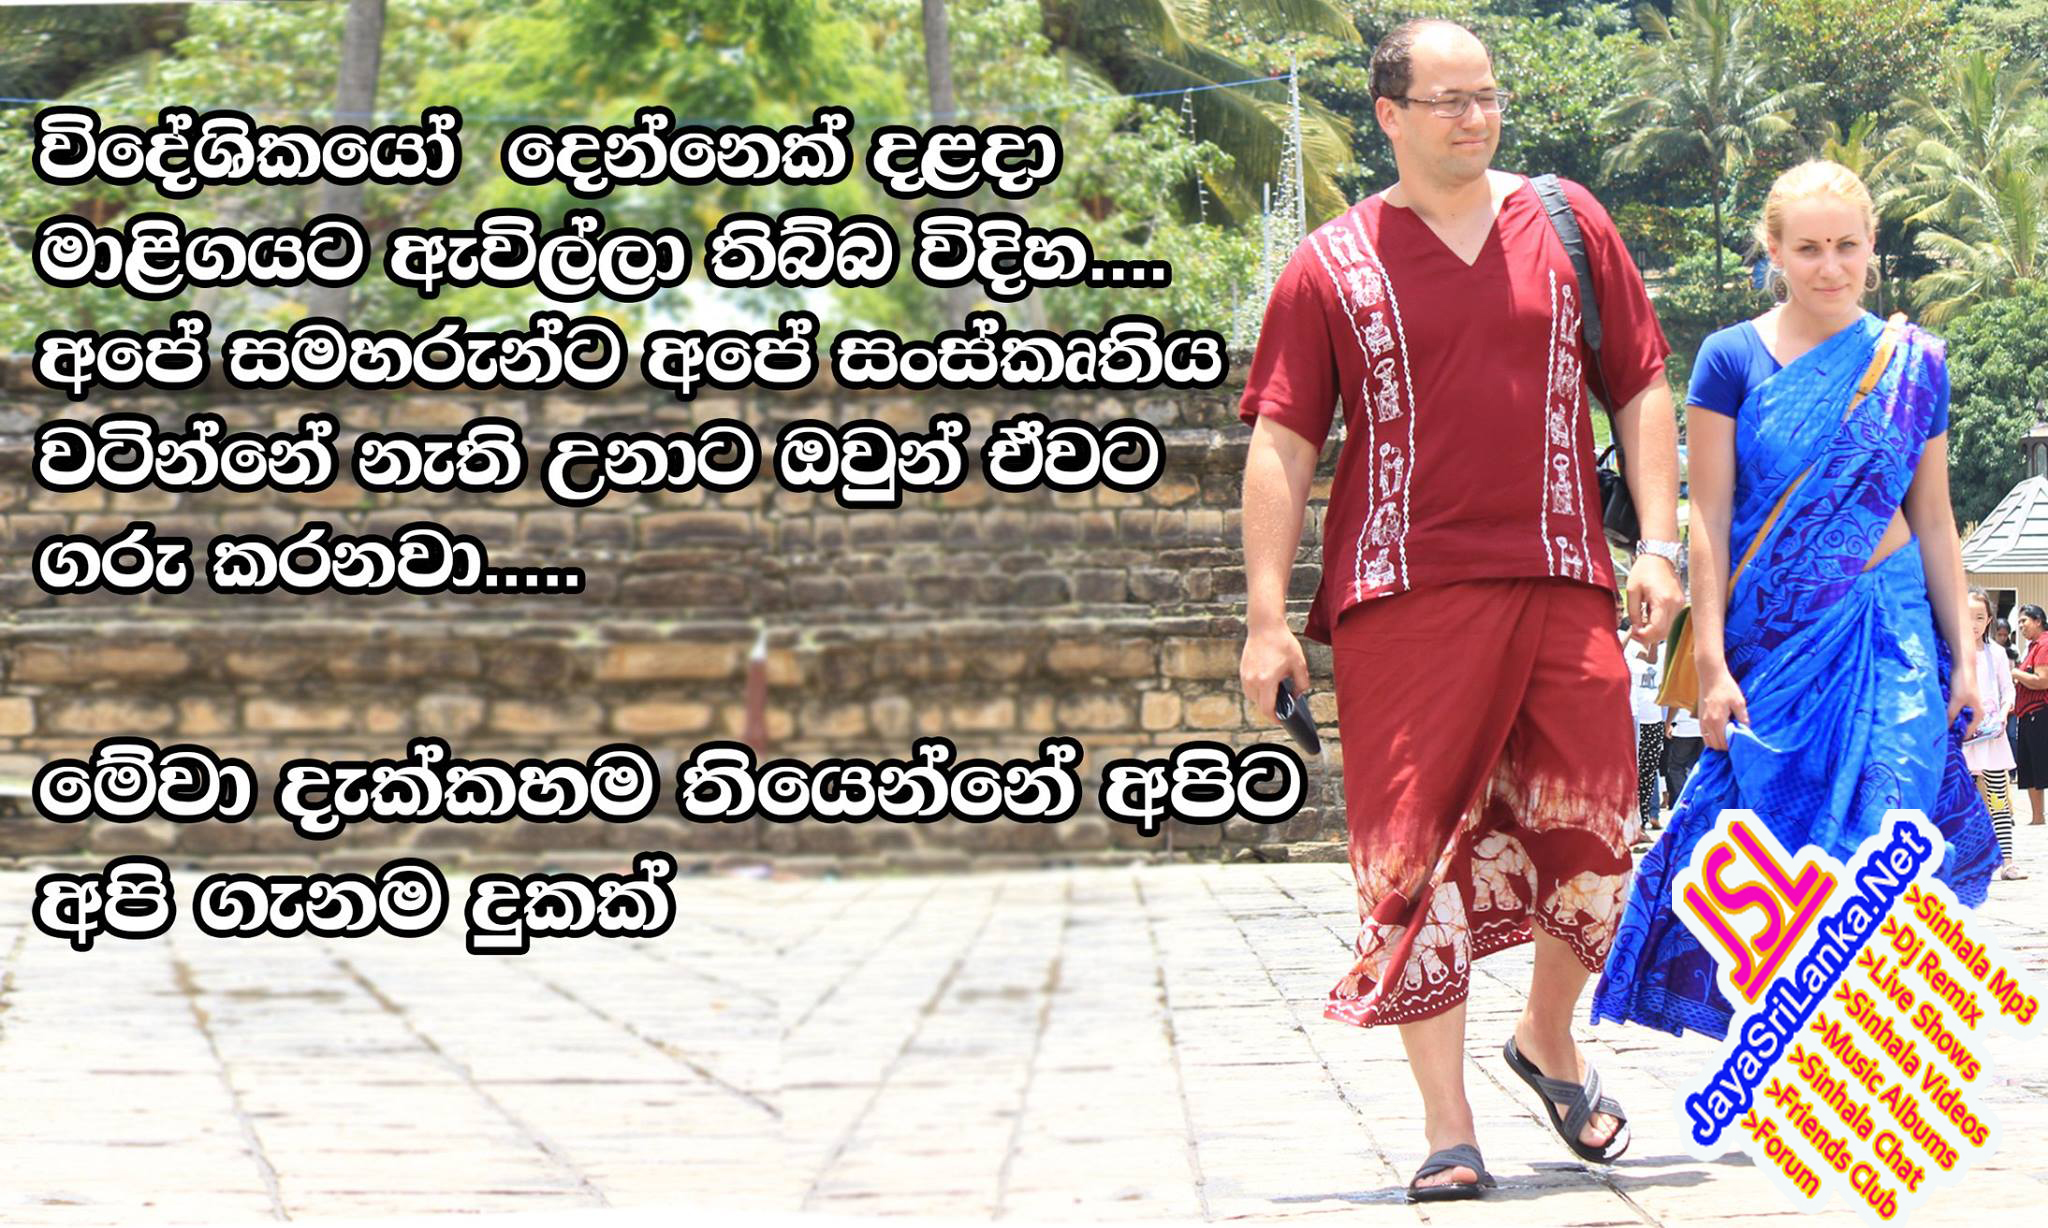 Download Sinhala Jokes Photos | Pictures | Wallpapers Page 31 ...